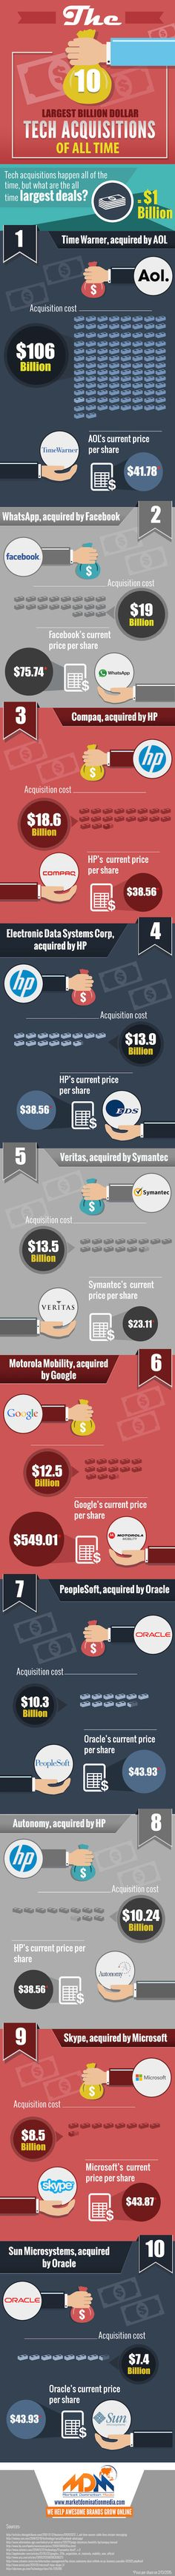 The 10 Biggest Tech Acquisitions of All Time (Infographic)